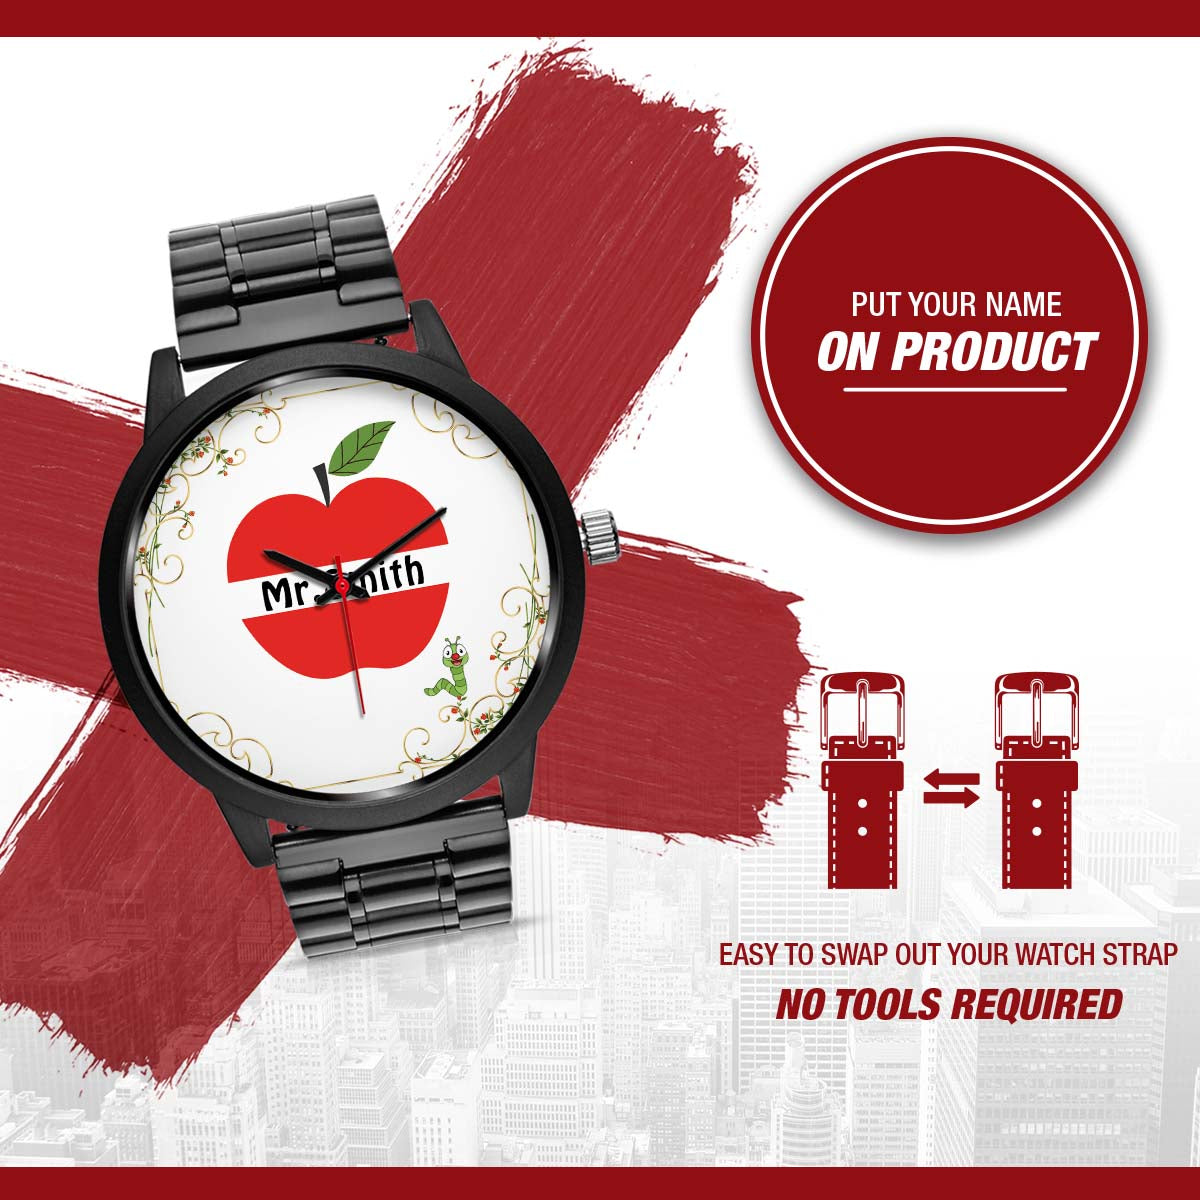 PERSONALIZED WATCH - TURN YOUR NAME INTO YOUR AMAZING WATCH